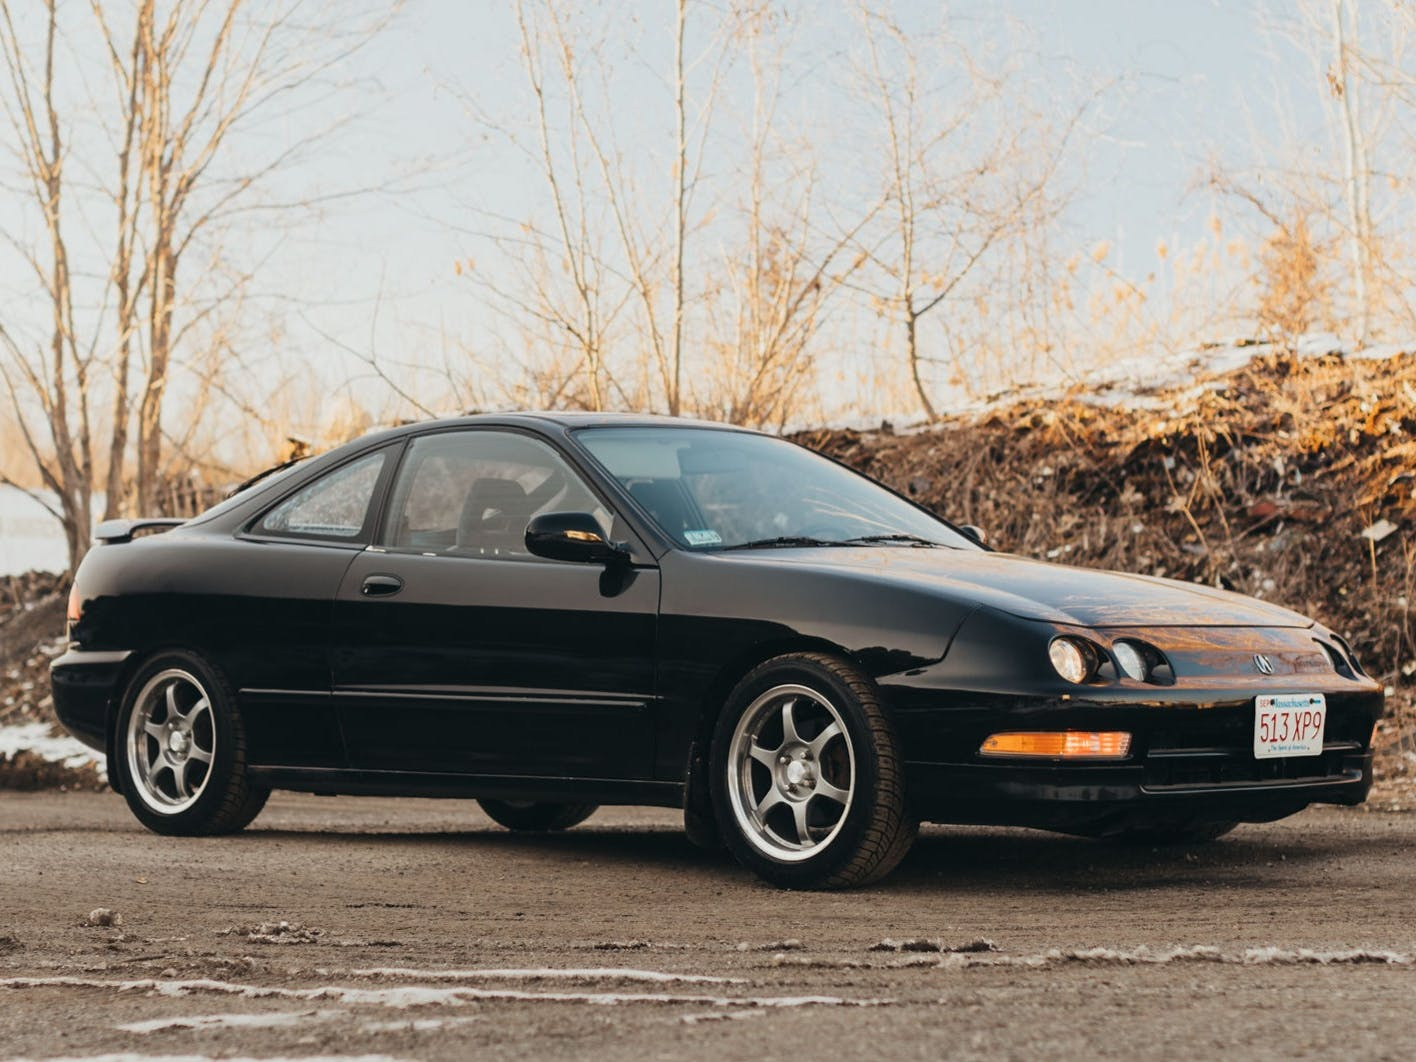 1995 Acura Integra GS-R